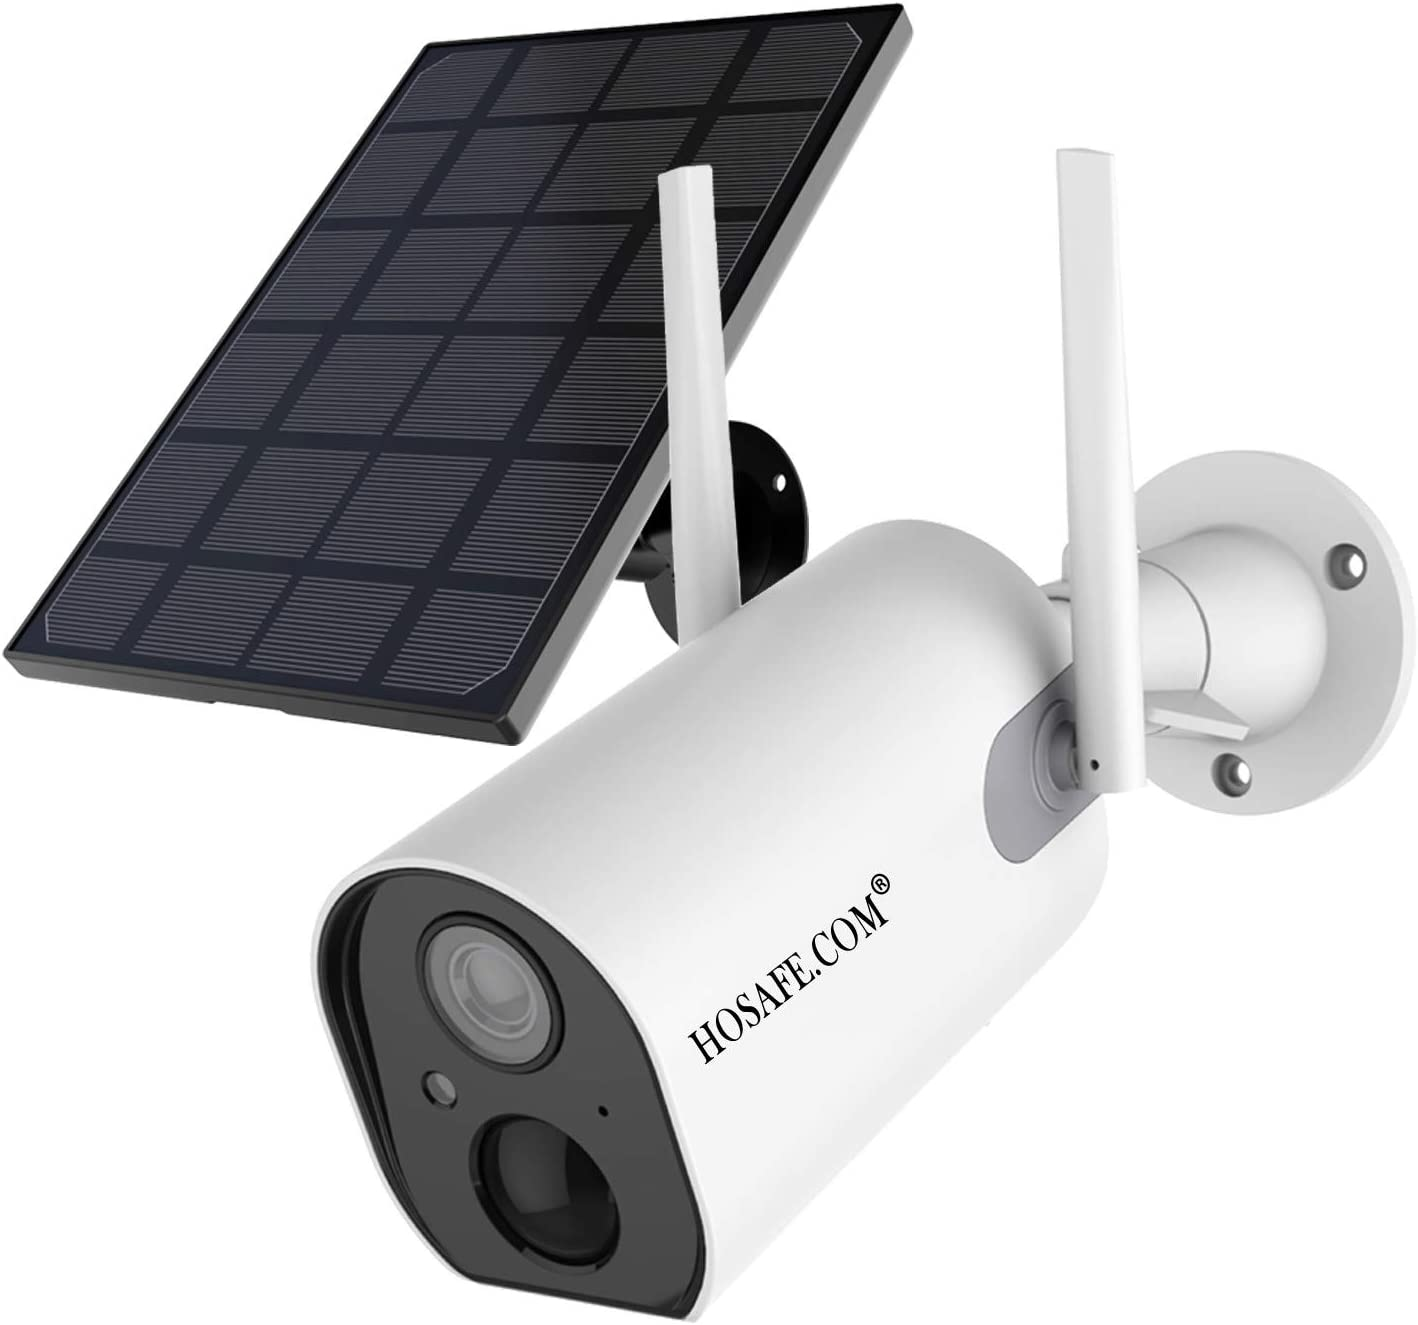 solar powered wireless security camera system with dvr